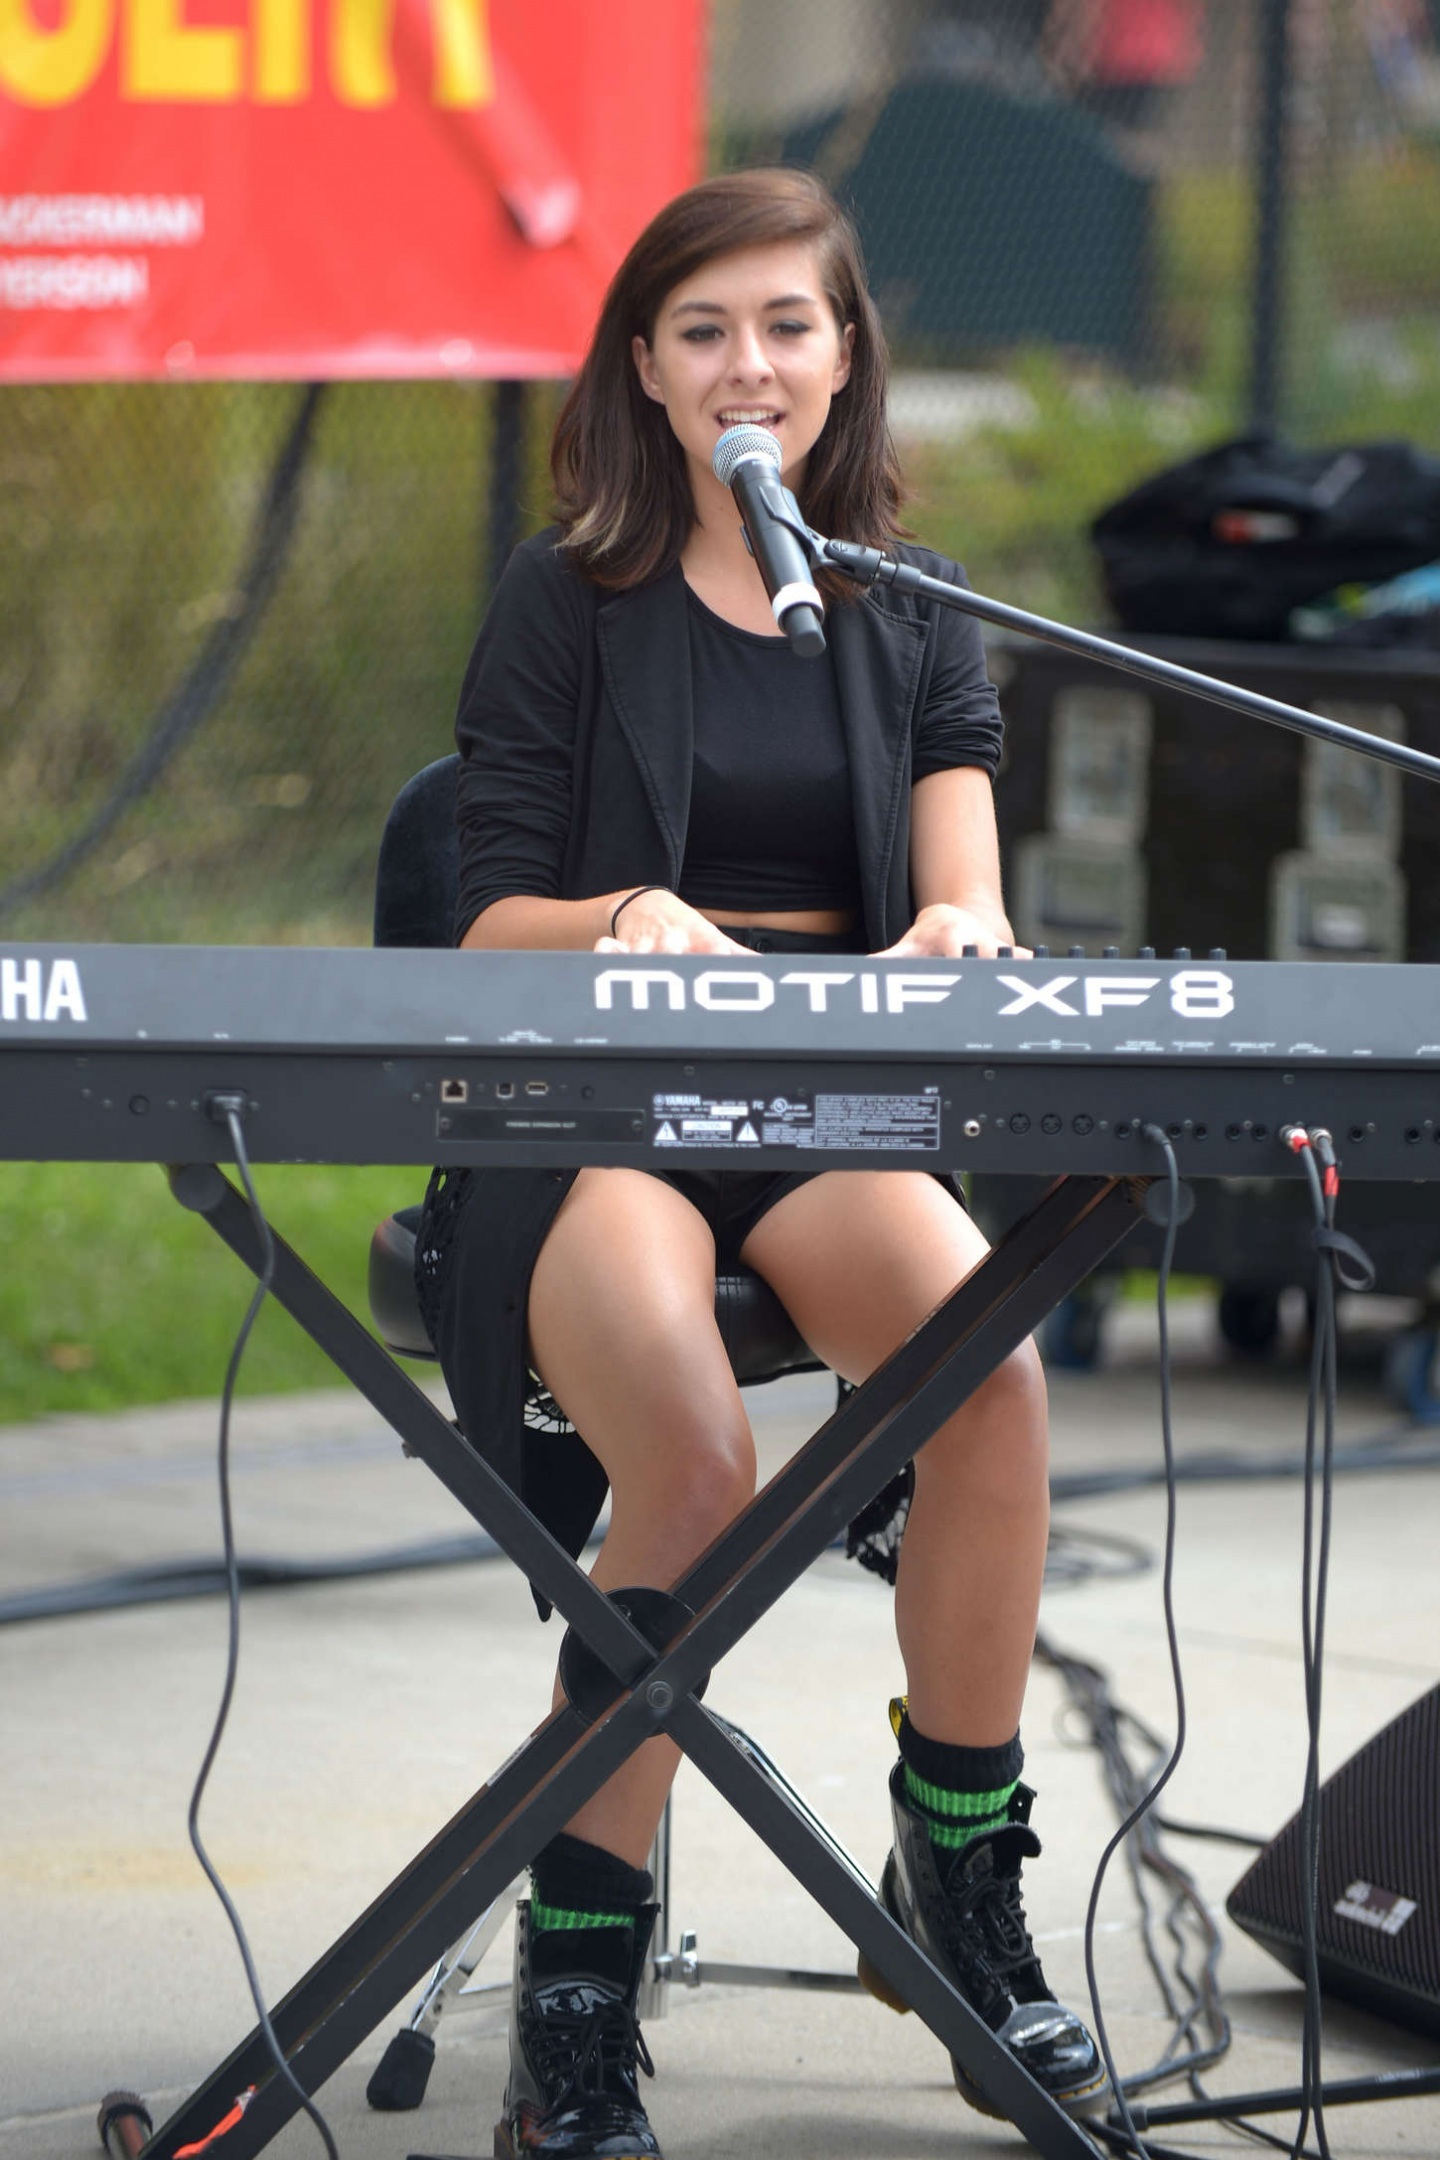 christina-grimmie-performing-at-the-east-hills-park-beach-687394427.jpg